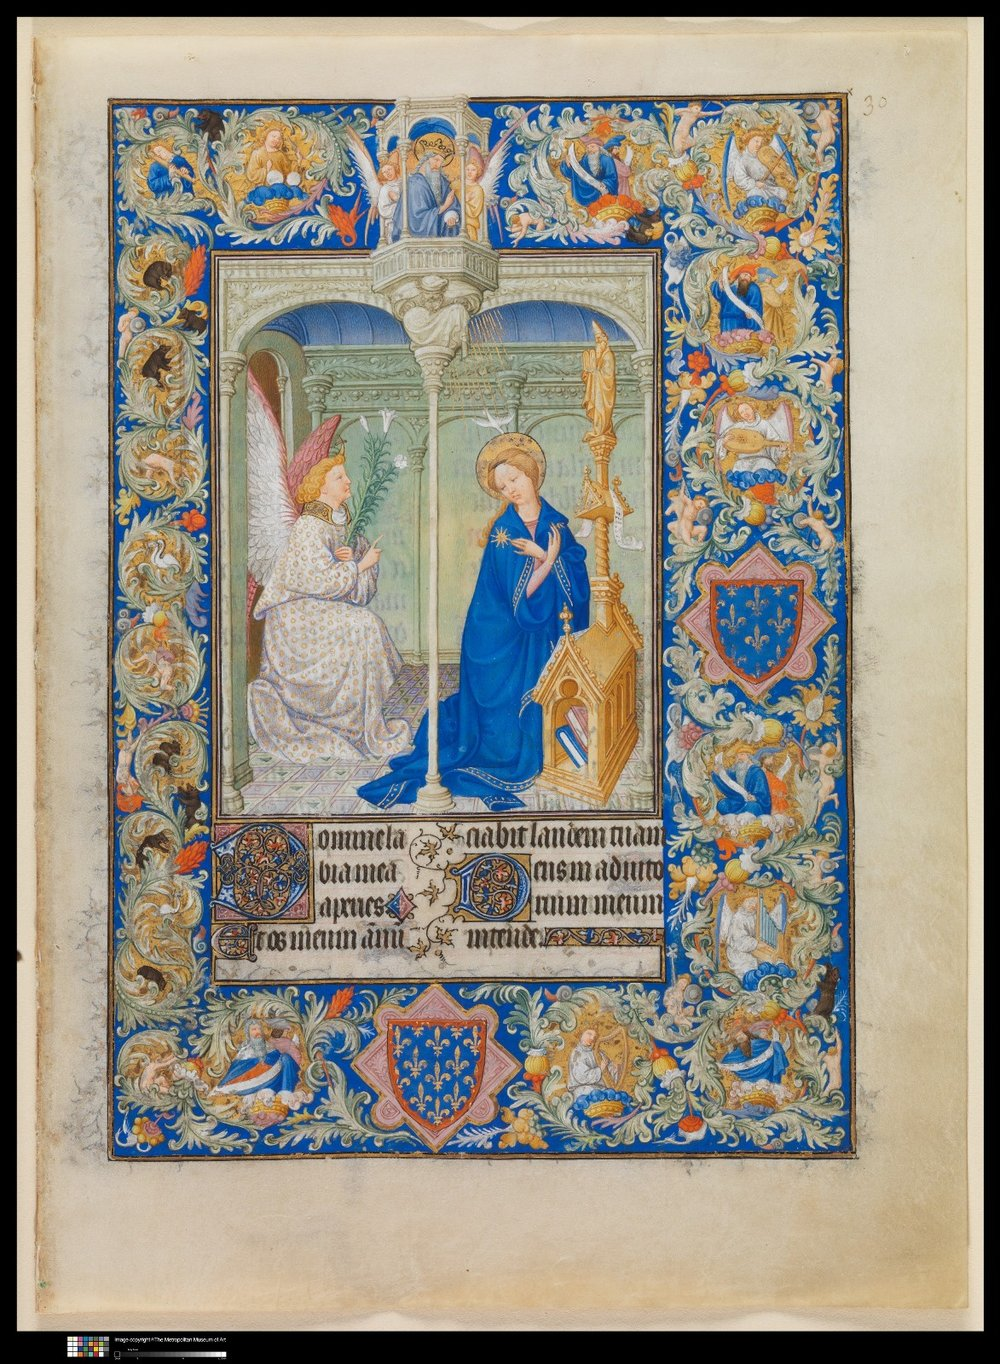 """ Medieval Art A Resource for Educators "". Fratelli Limbourg, ""The belles heures of Jean de france, Duc de Berry"", 1405-09 circa"